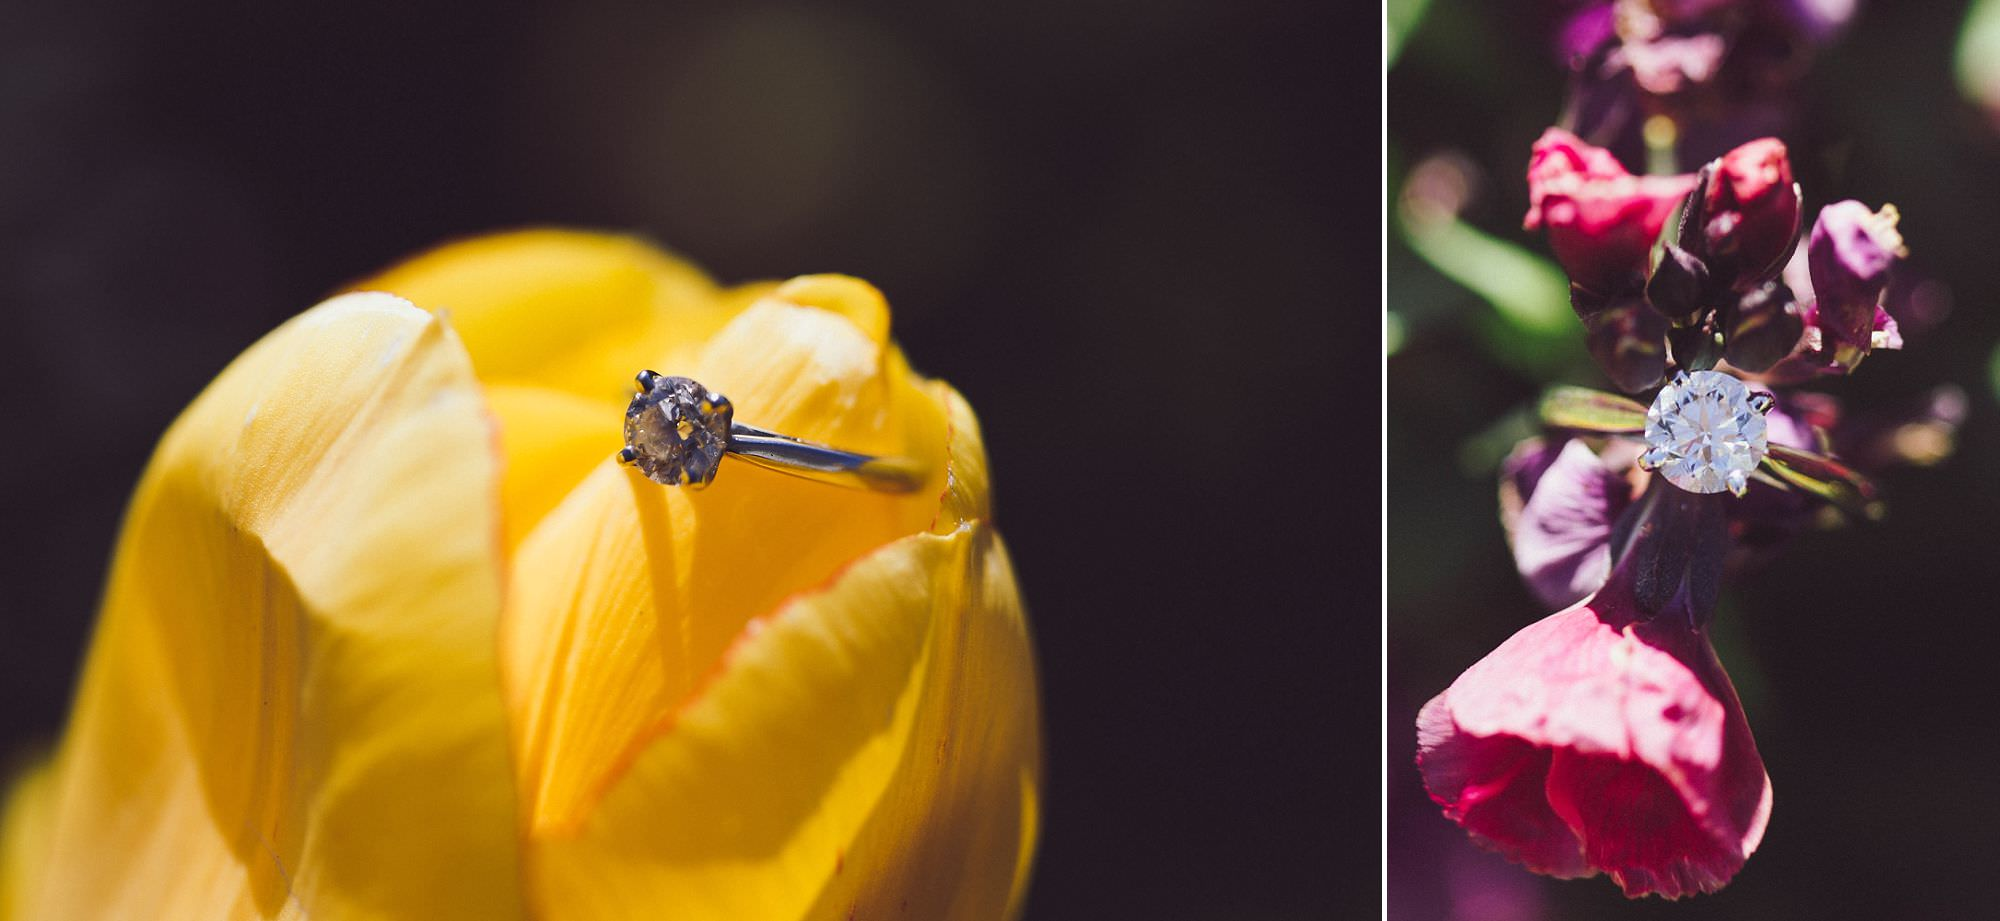 We found some beautiful spring flowers to take some macro photos of Elizabeth's beautiful engagement ring!